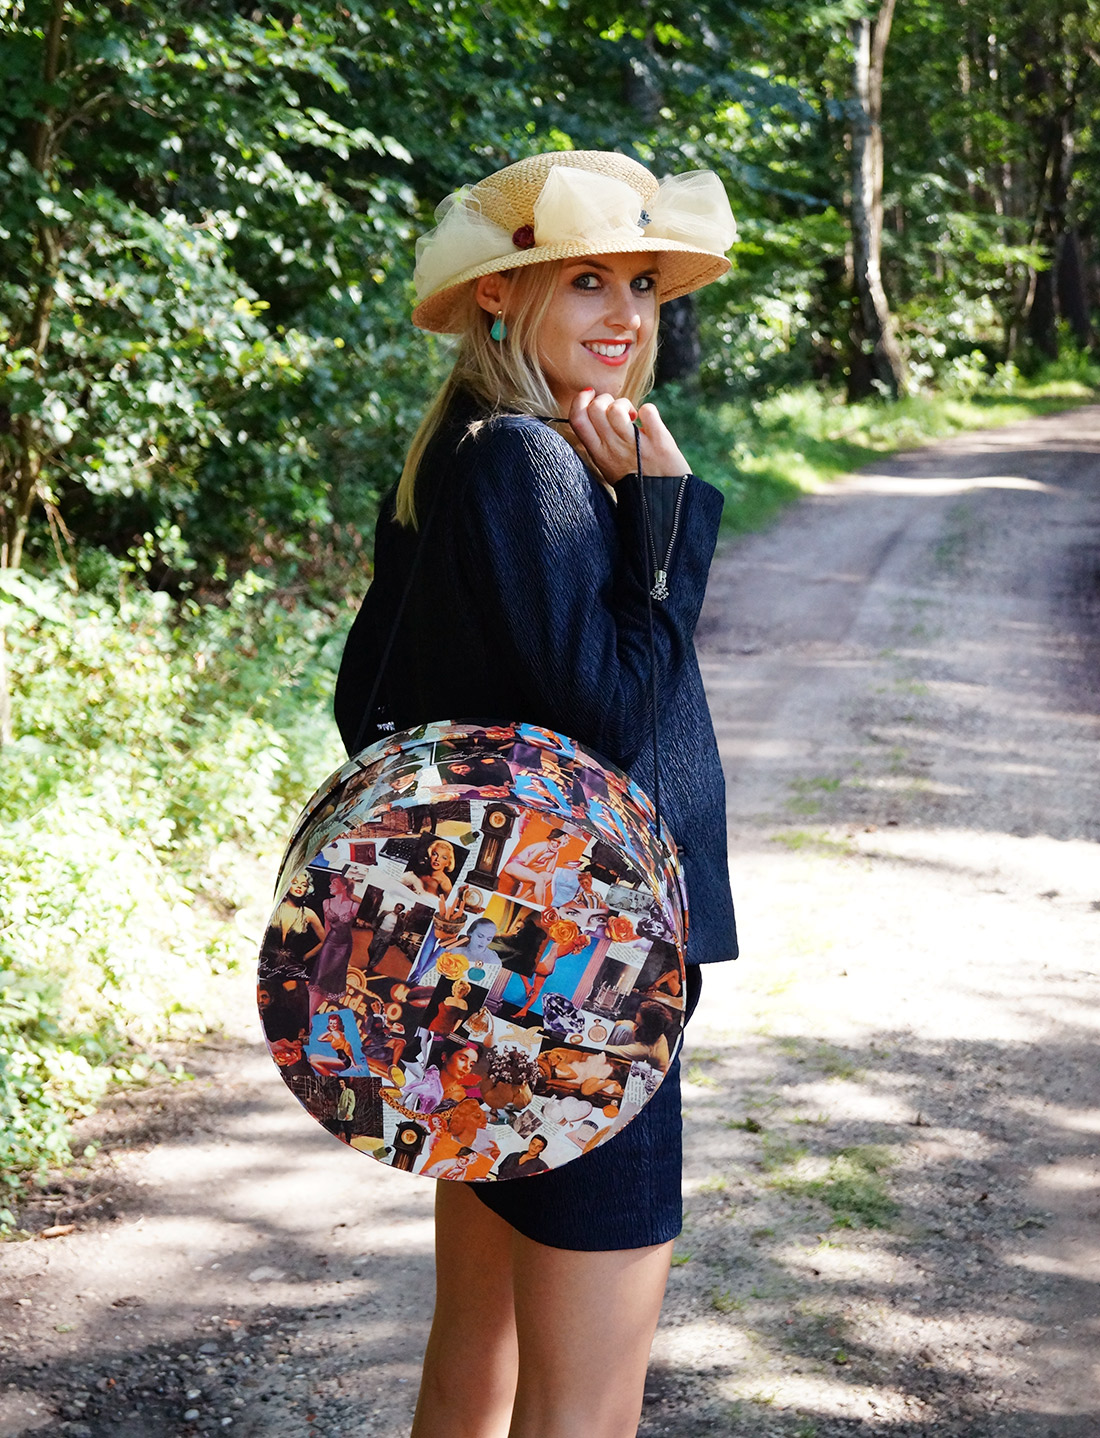 Bag-at-You---Fashion-blog---Hat-box-bag---wearing-a-suit